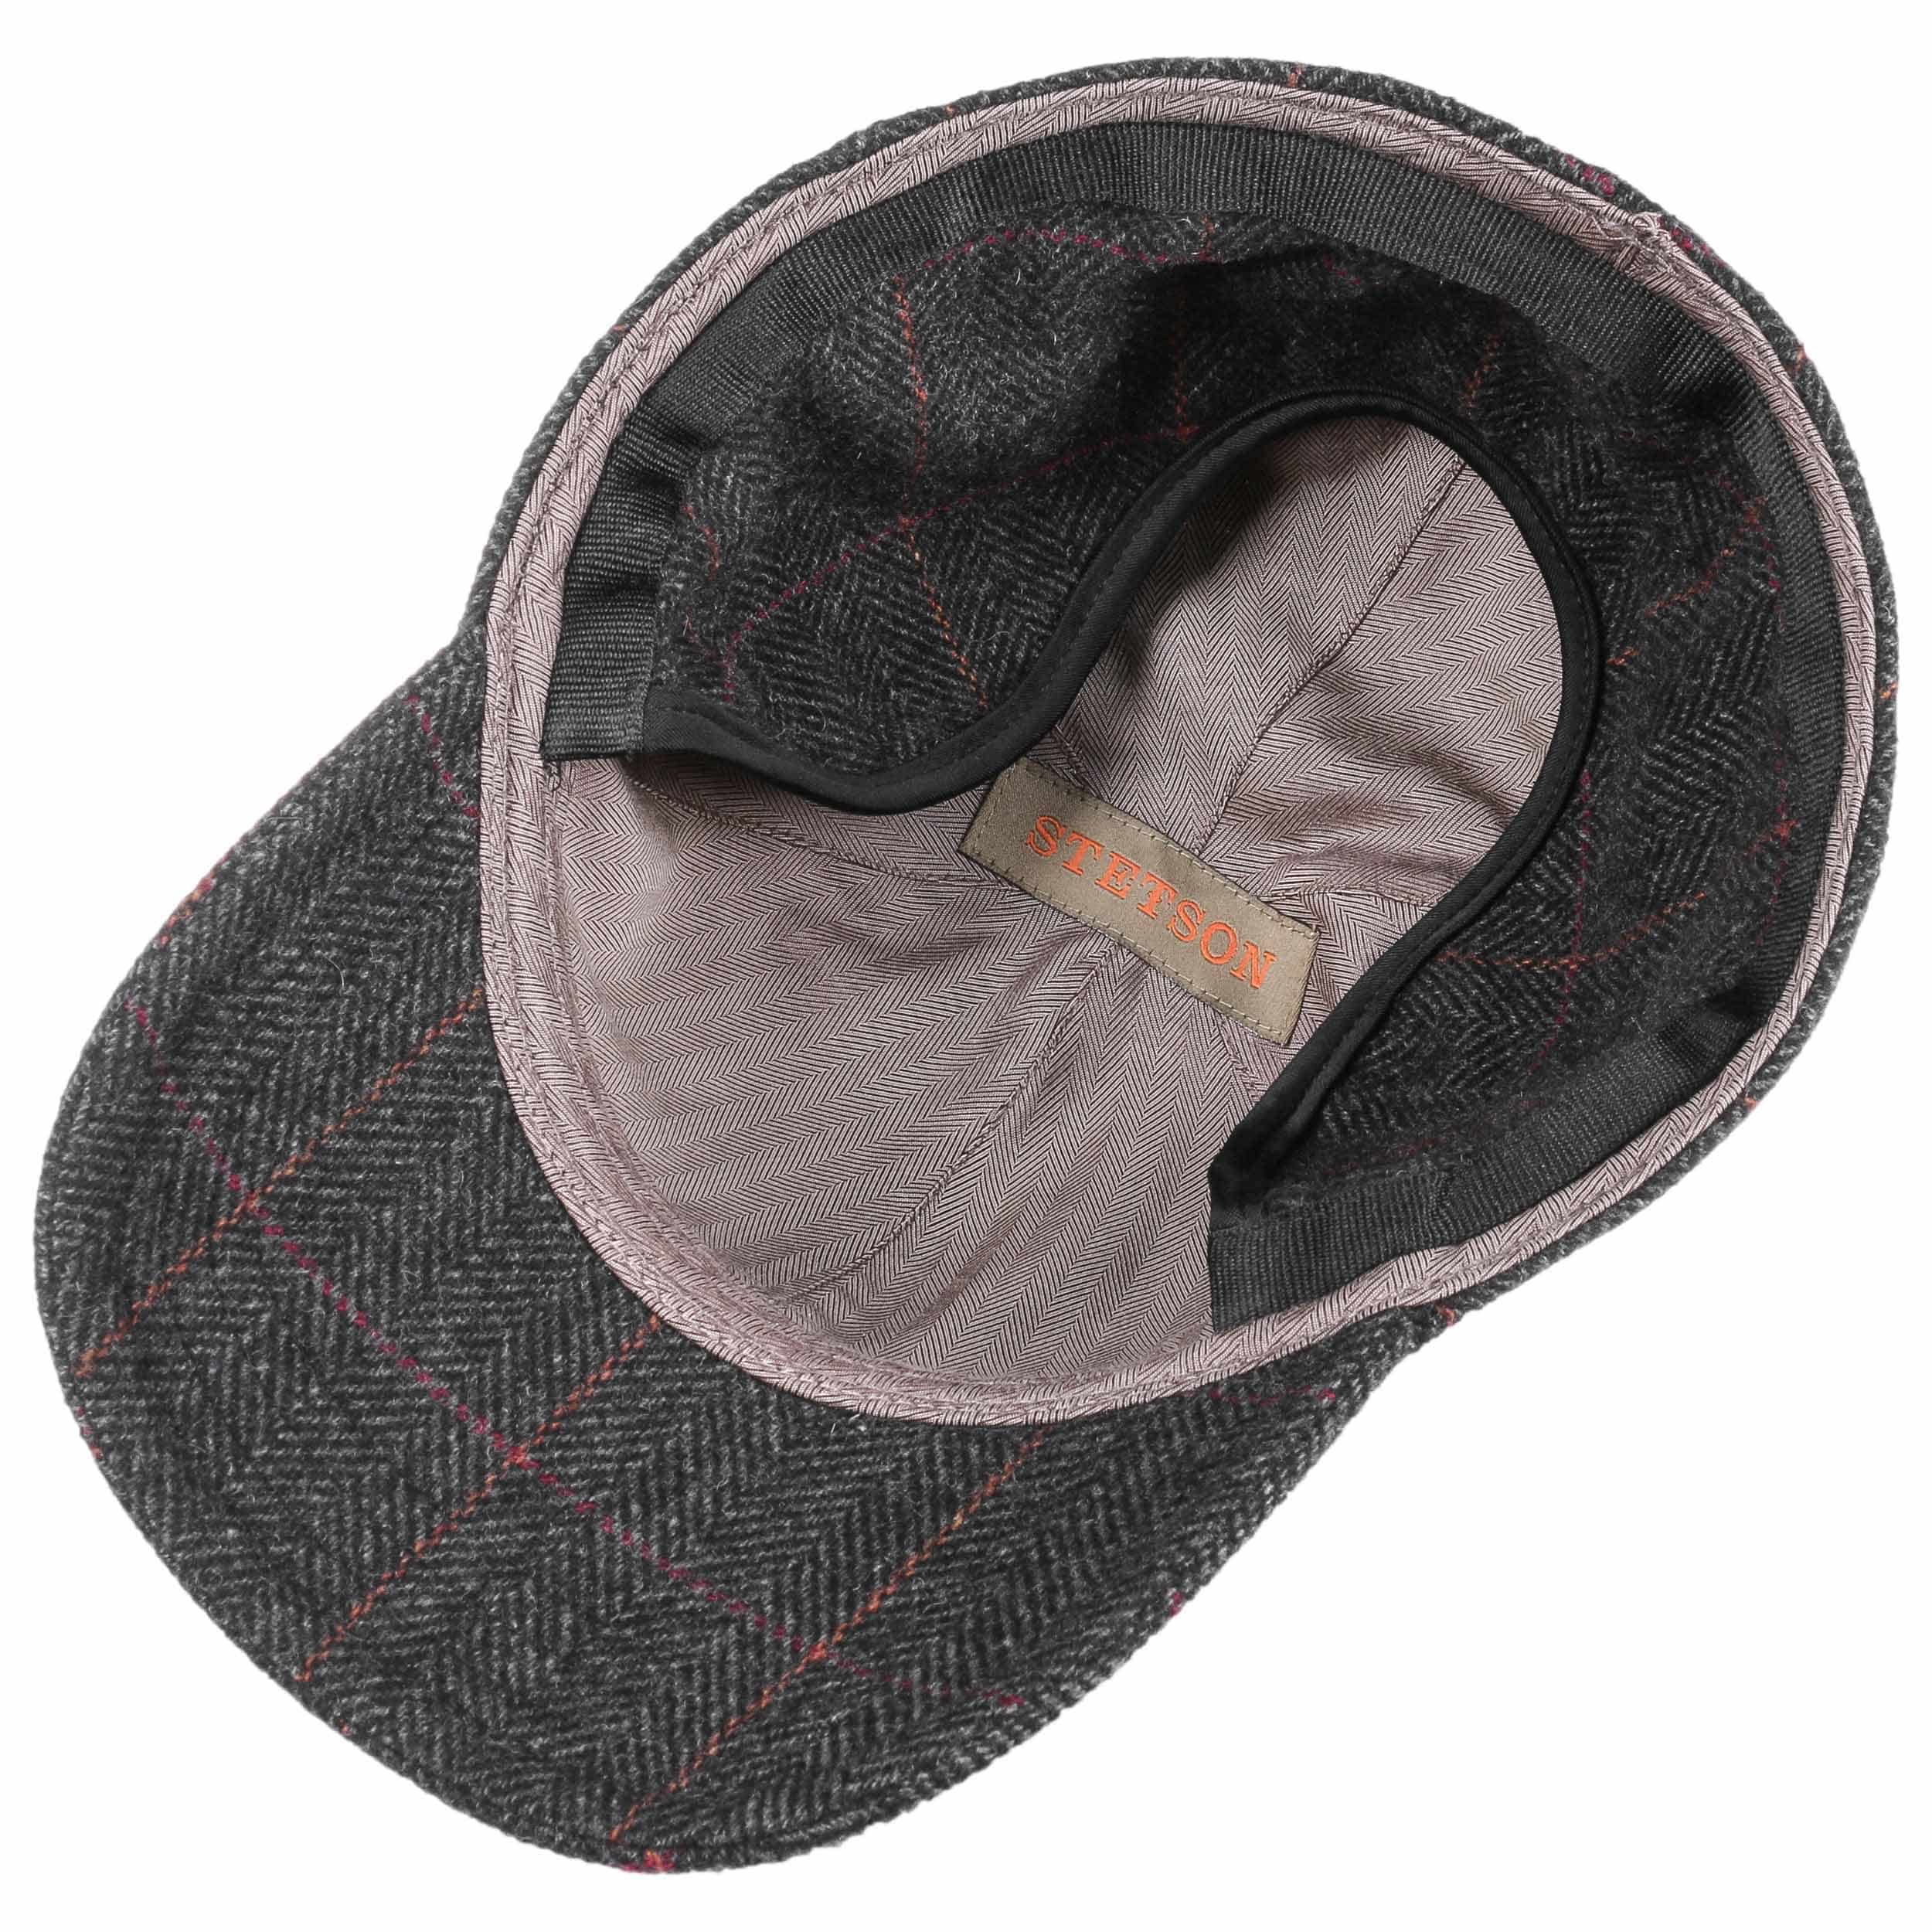 bf90787c409b1 ... Kinty Wool Cap with Ear Flaps by Stetson - grey 2 ...